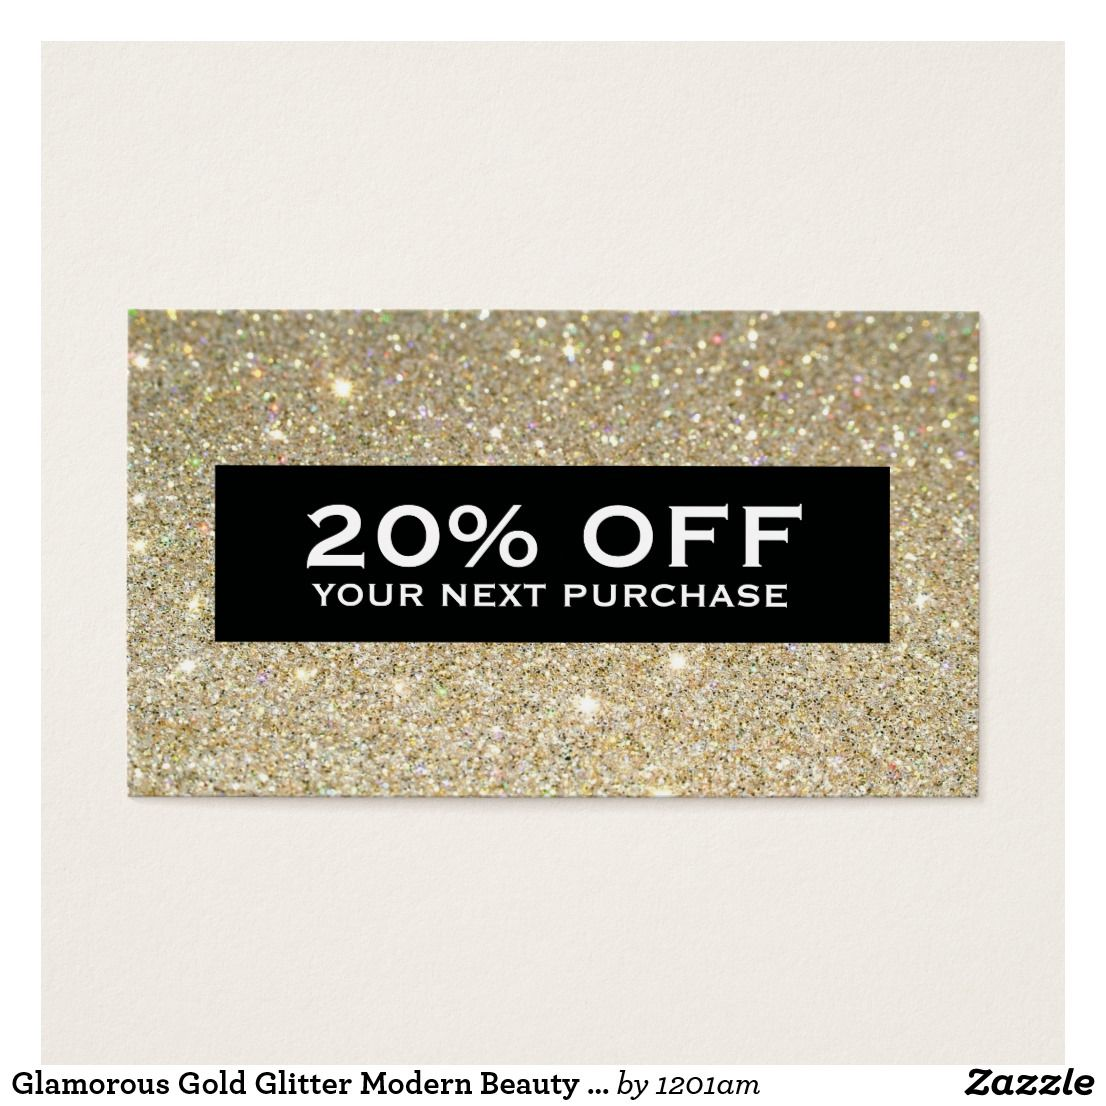 Glamorous Gold Glitter Modern Beauty Coupon Card Coordinates with ...